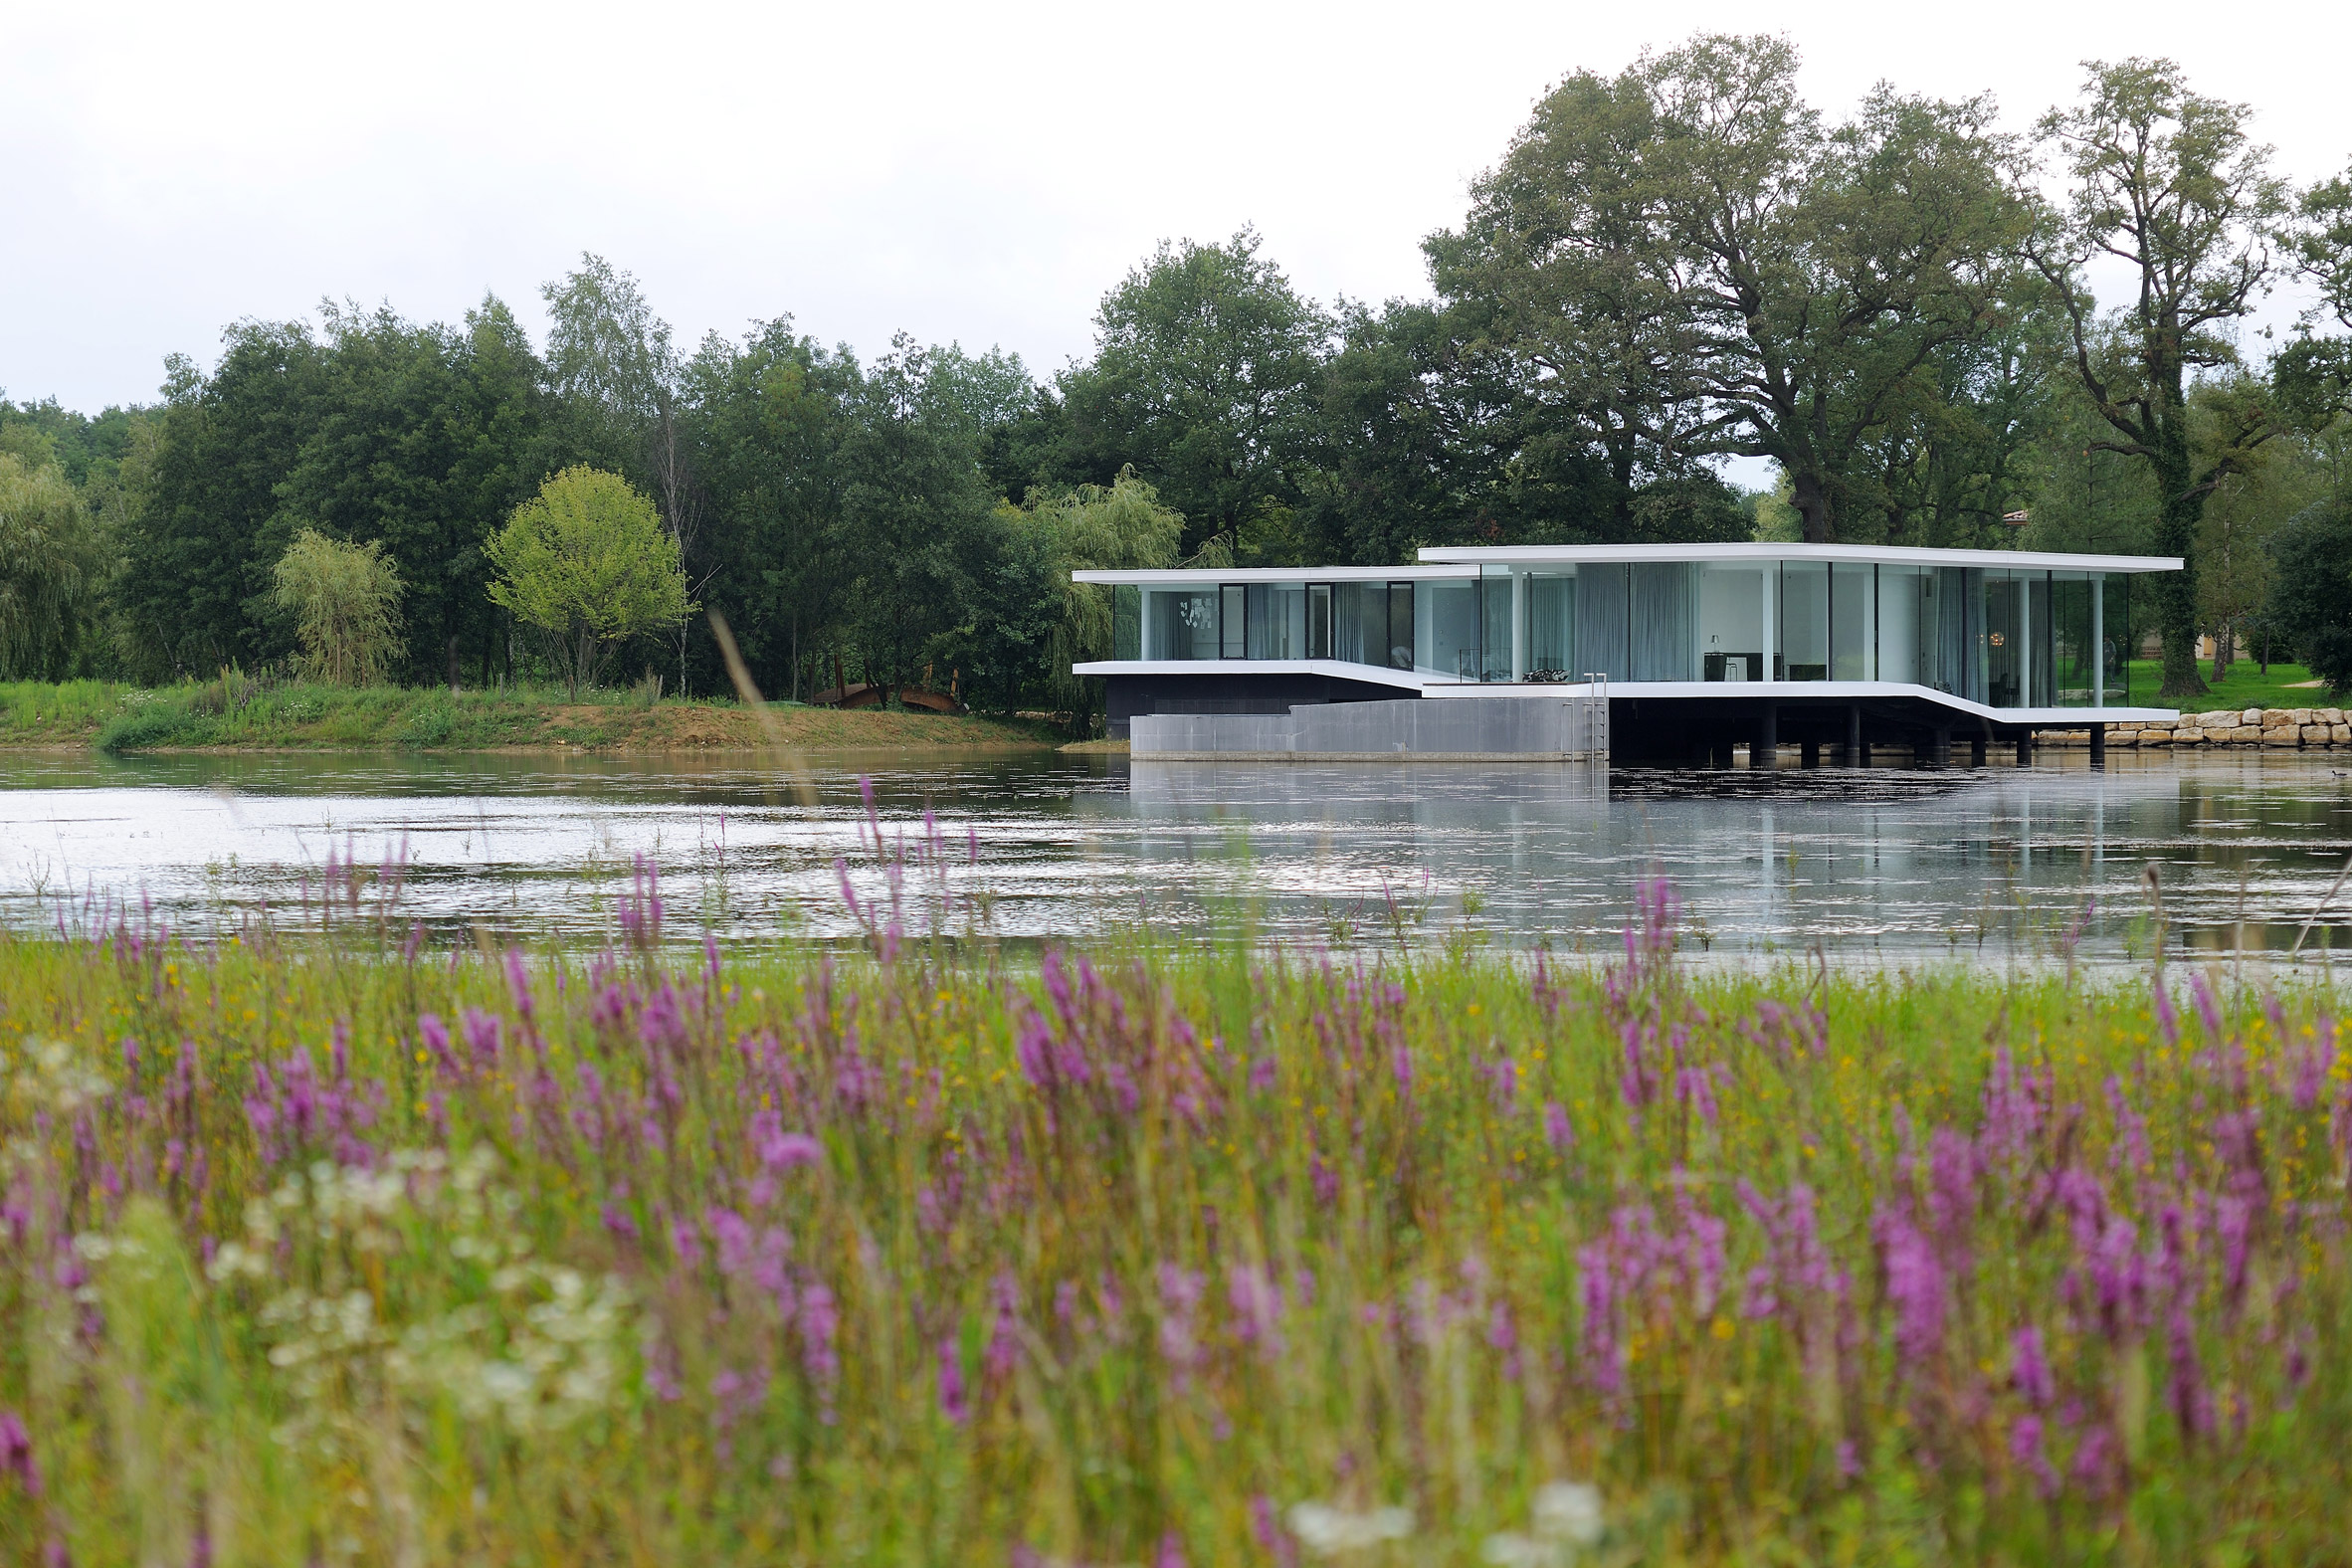 AUM builds curving concrete and glass residence on the surface of a lake